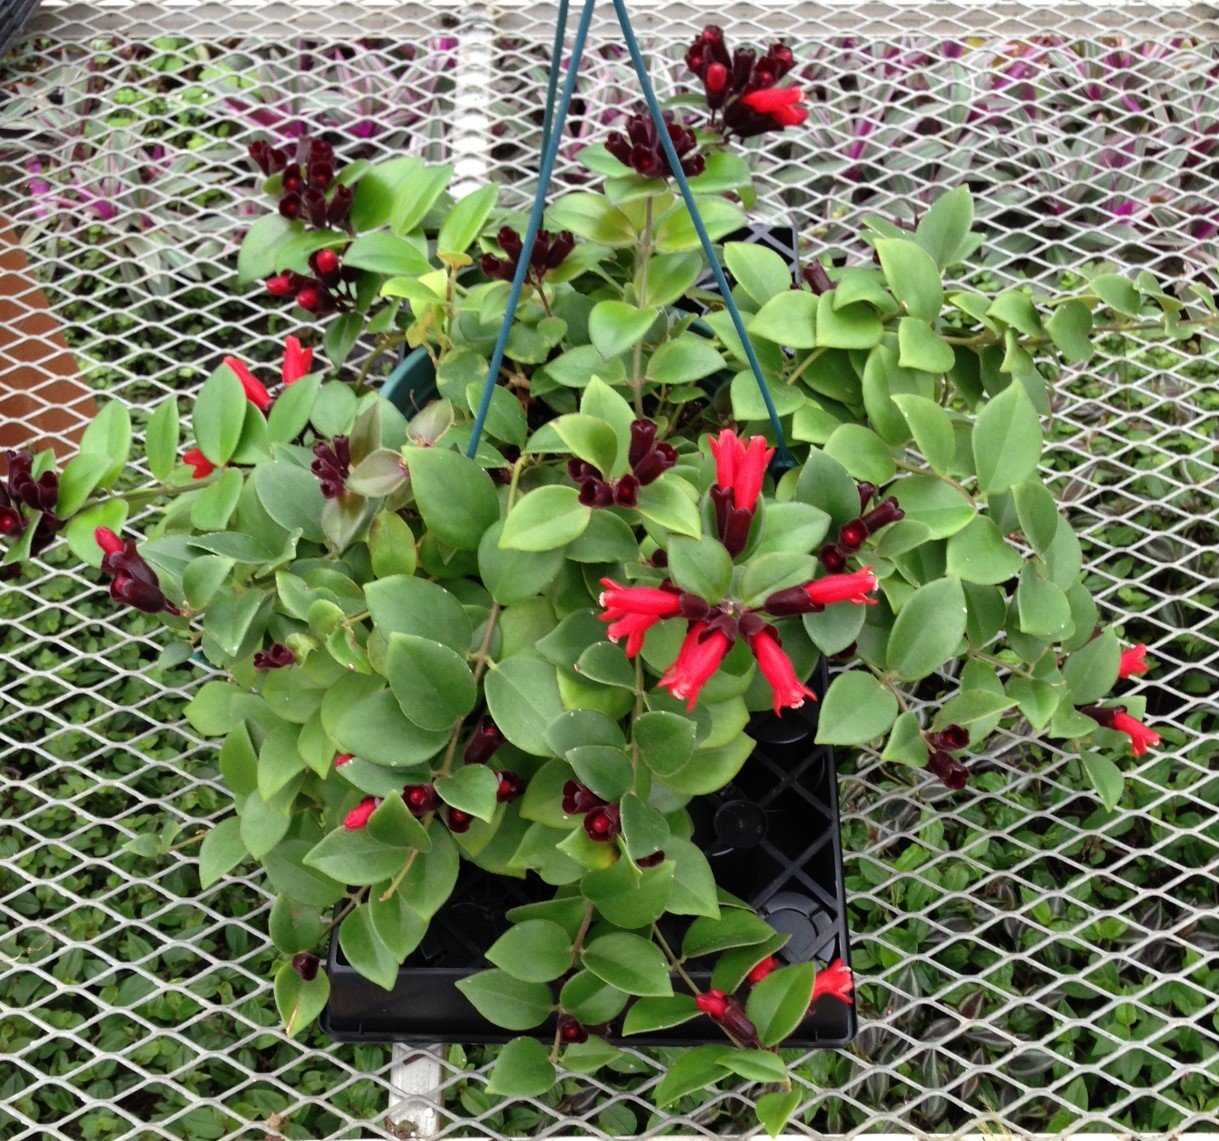 Gary S Specialty Plants Why Lipstick Plants Flower The